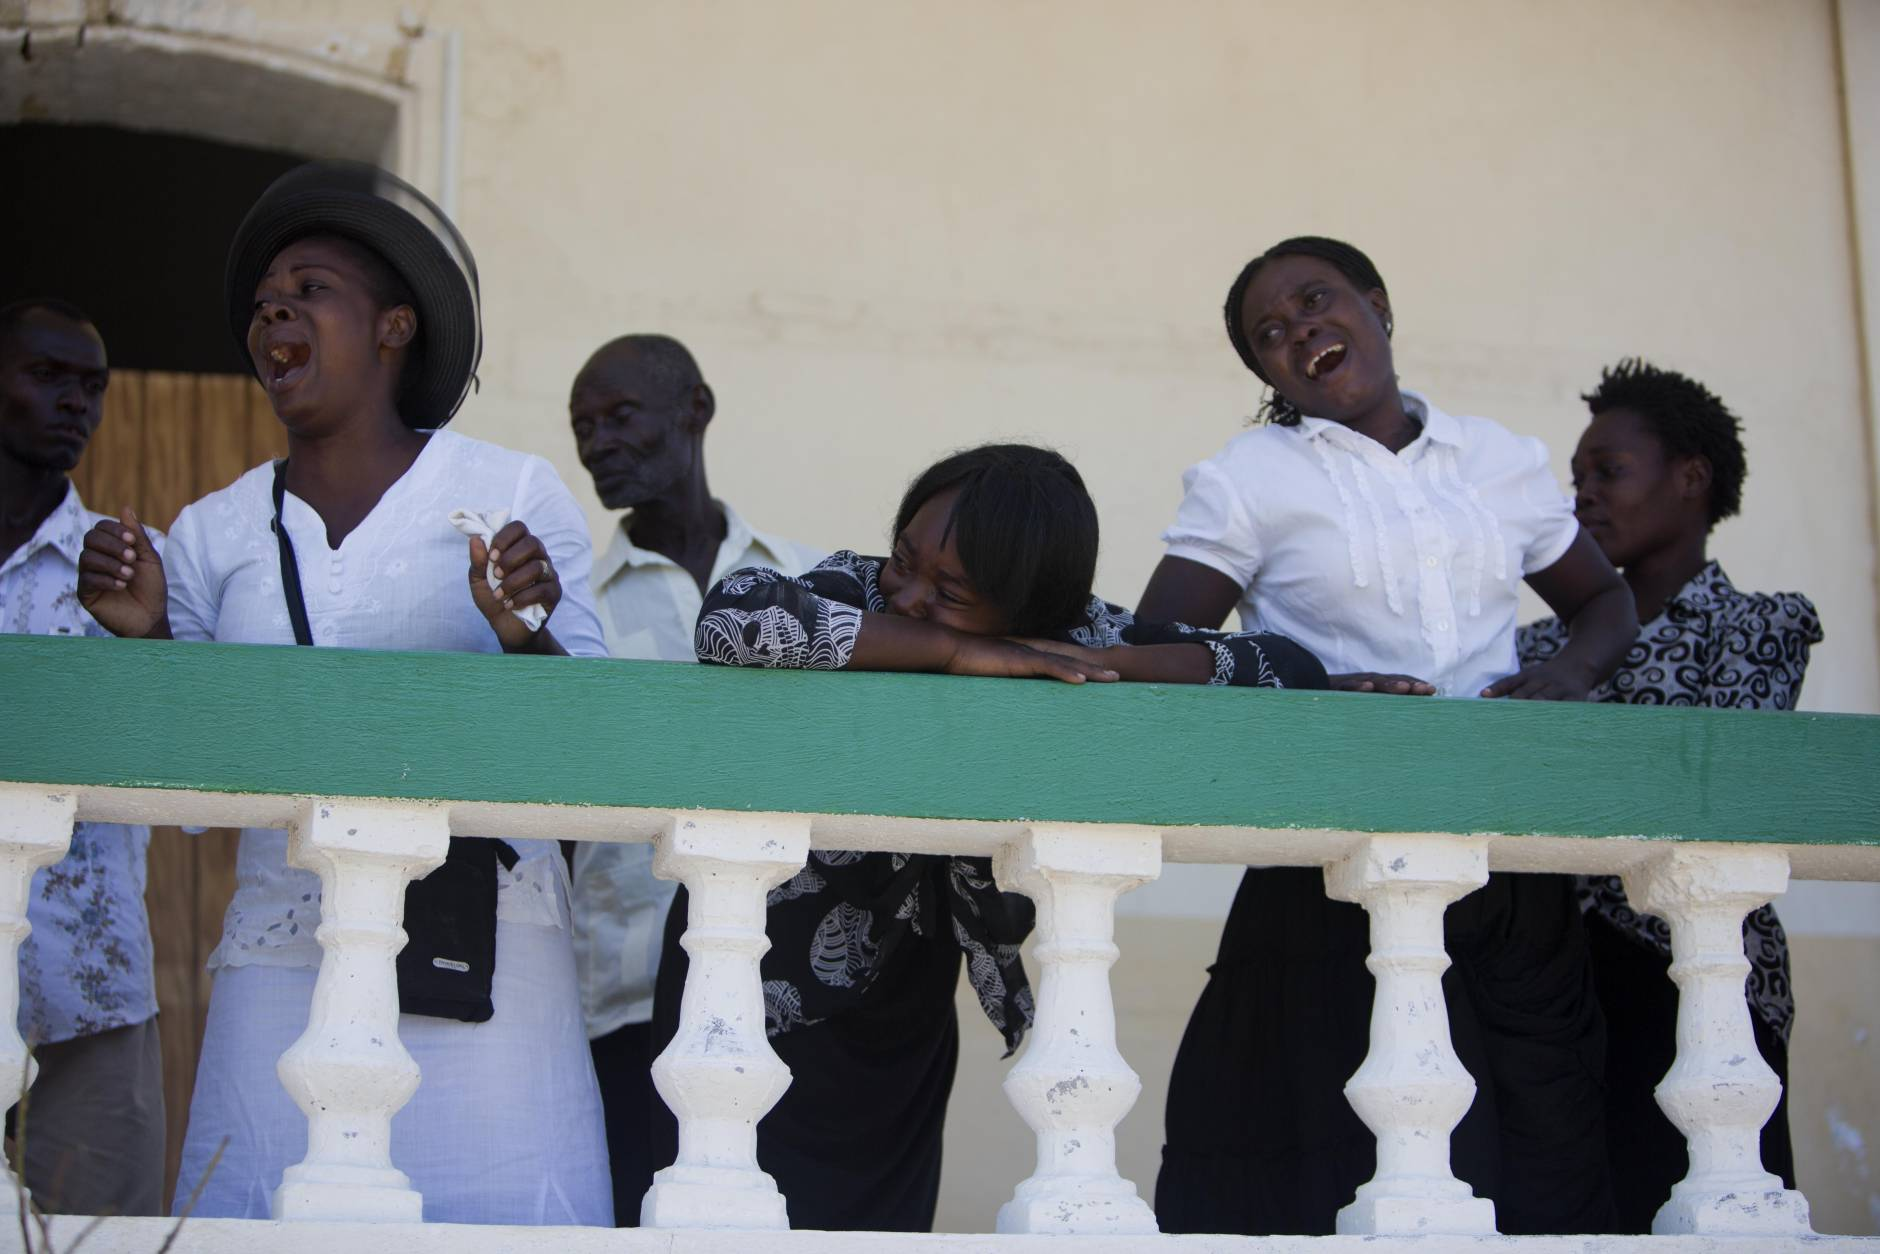 Women from the Laguerre family cry during the burial of Roberto Laguerre in Jeremie, Haiti, Saturday, Oct. 8, 2016. Roberto, 32, died when the wall of a church next door to his home fell during Hurricane Matthew. (AP Photo/Dieu Nalio Chery)